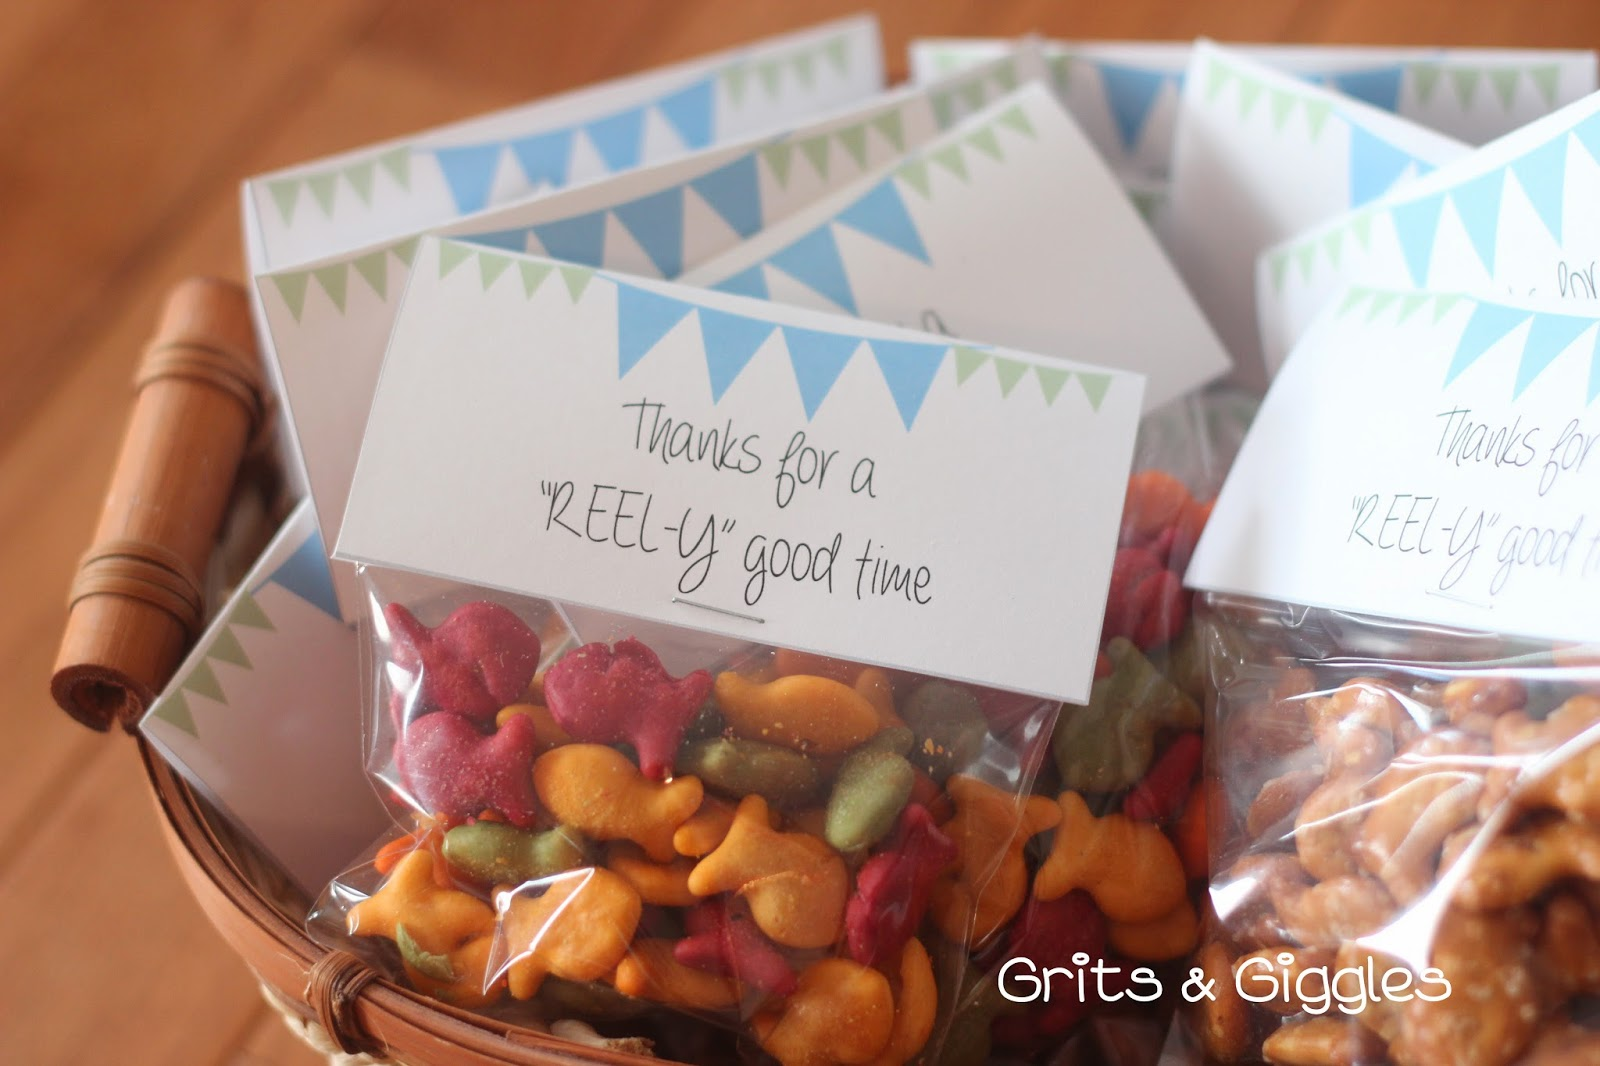 Grits giggles free printable fishing party favors for Fishing party favors